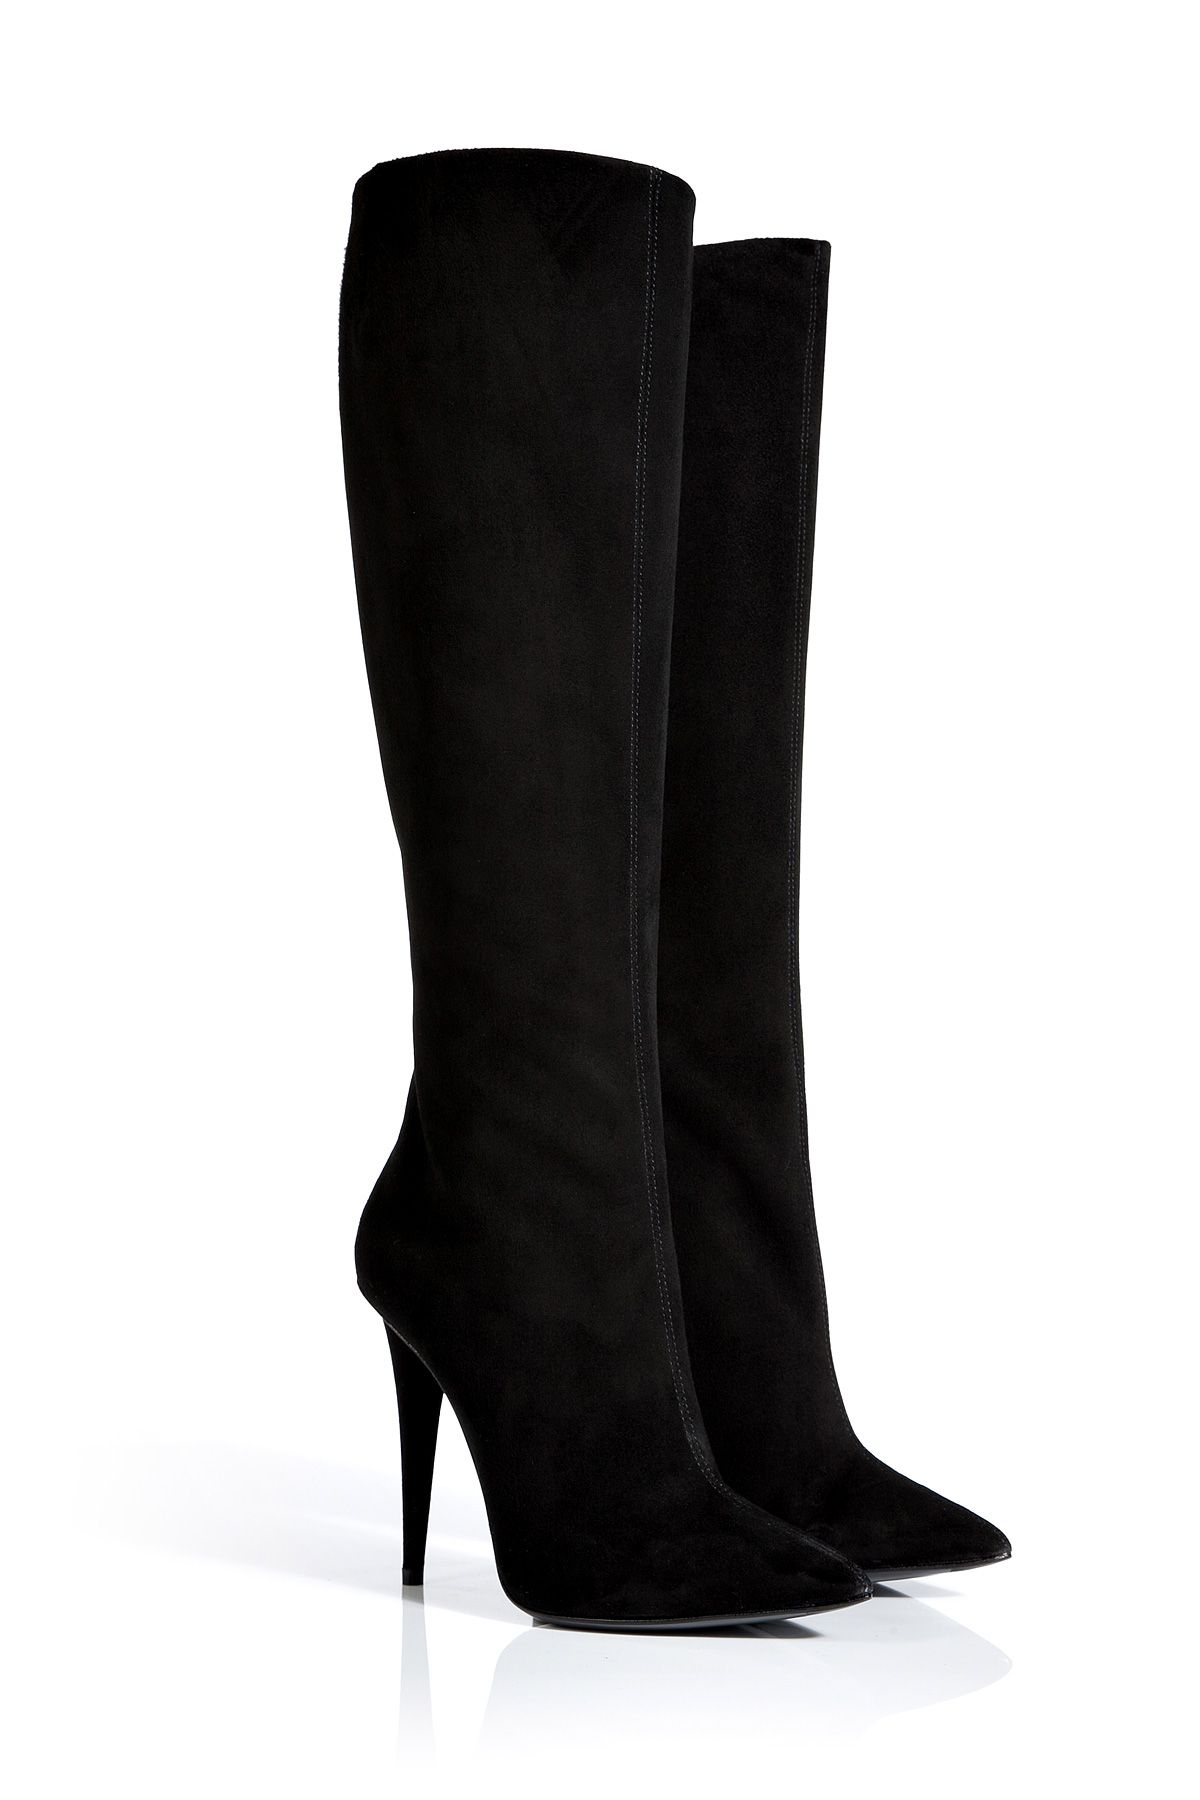 Black Suede Pointed-Toe Boots / Giuseppe Zanotti.